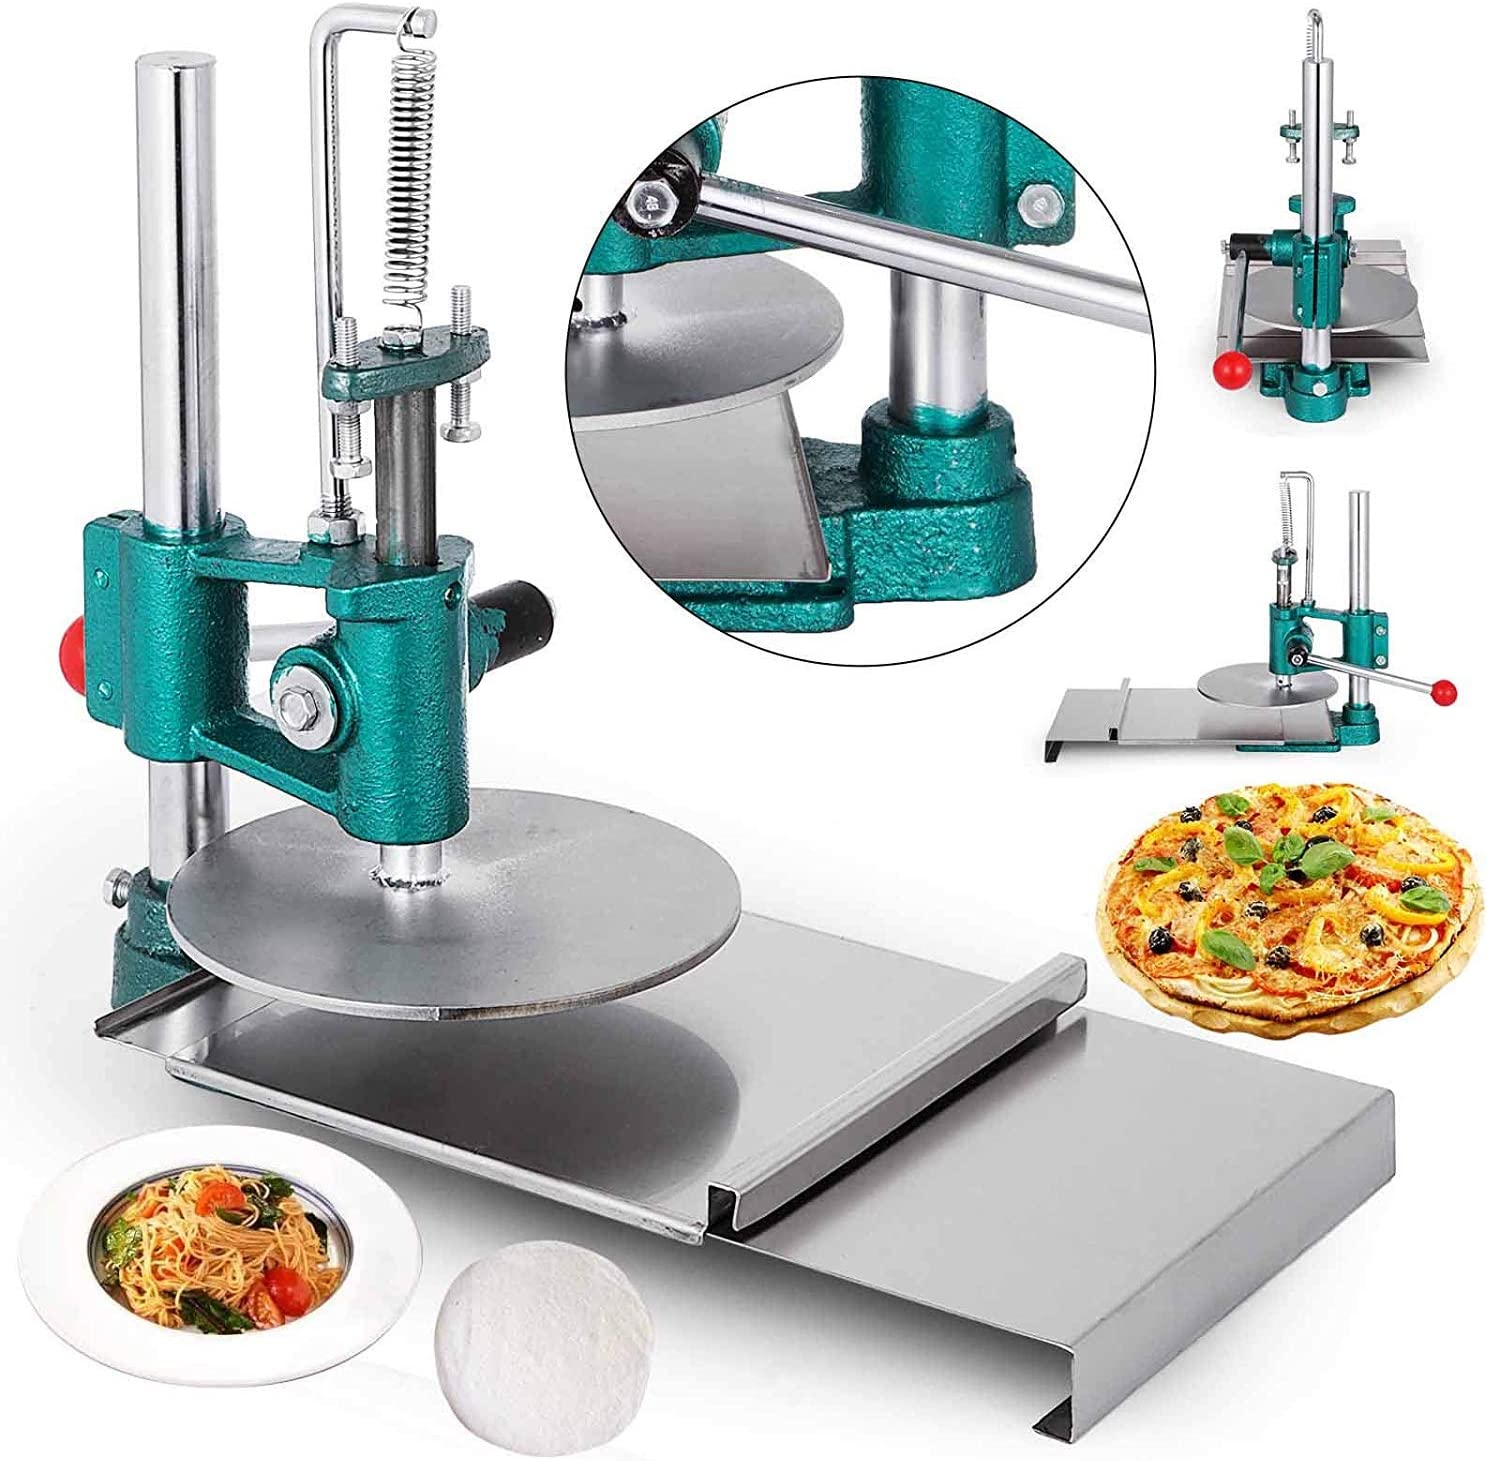 VEVOR Pizza Pastry Press Machine Stainless Steel Household Pizza Dough Pastry Manual Press Machine Metal Plate Diameter 7.87inches